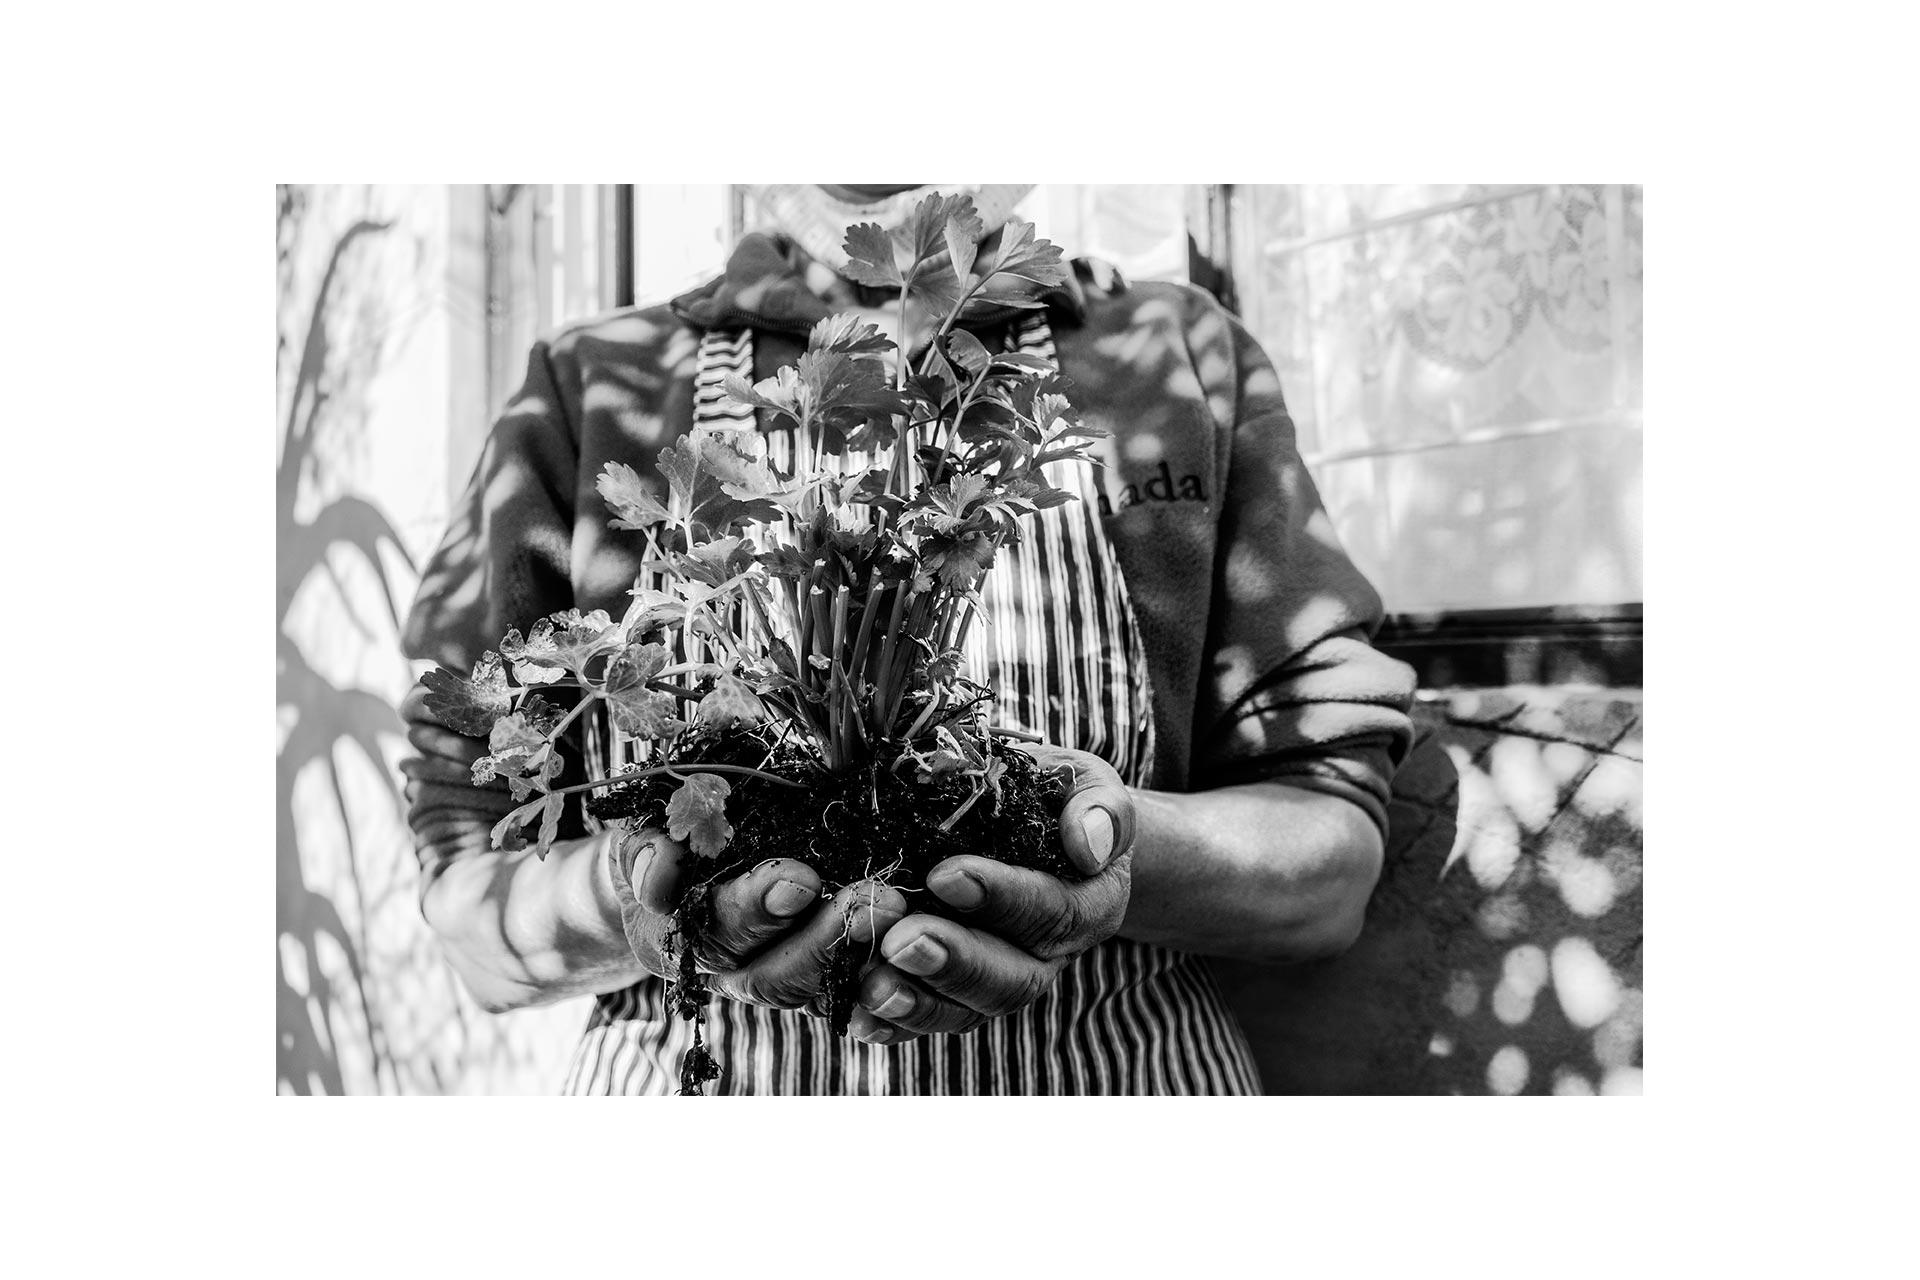 Lady holding a plant